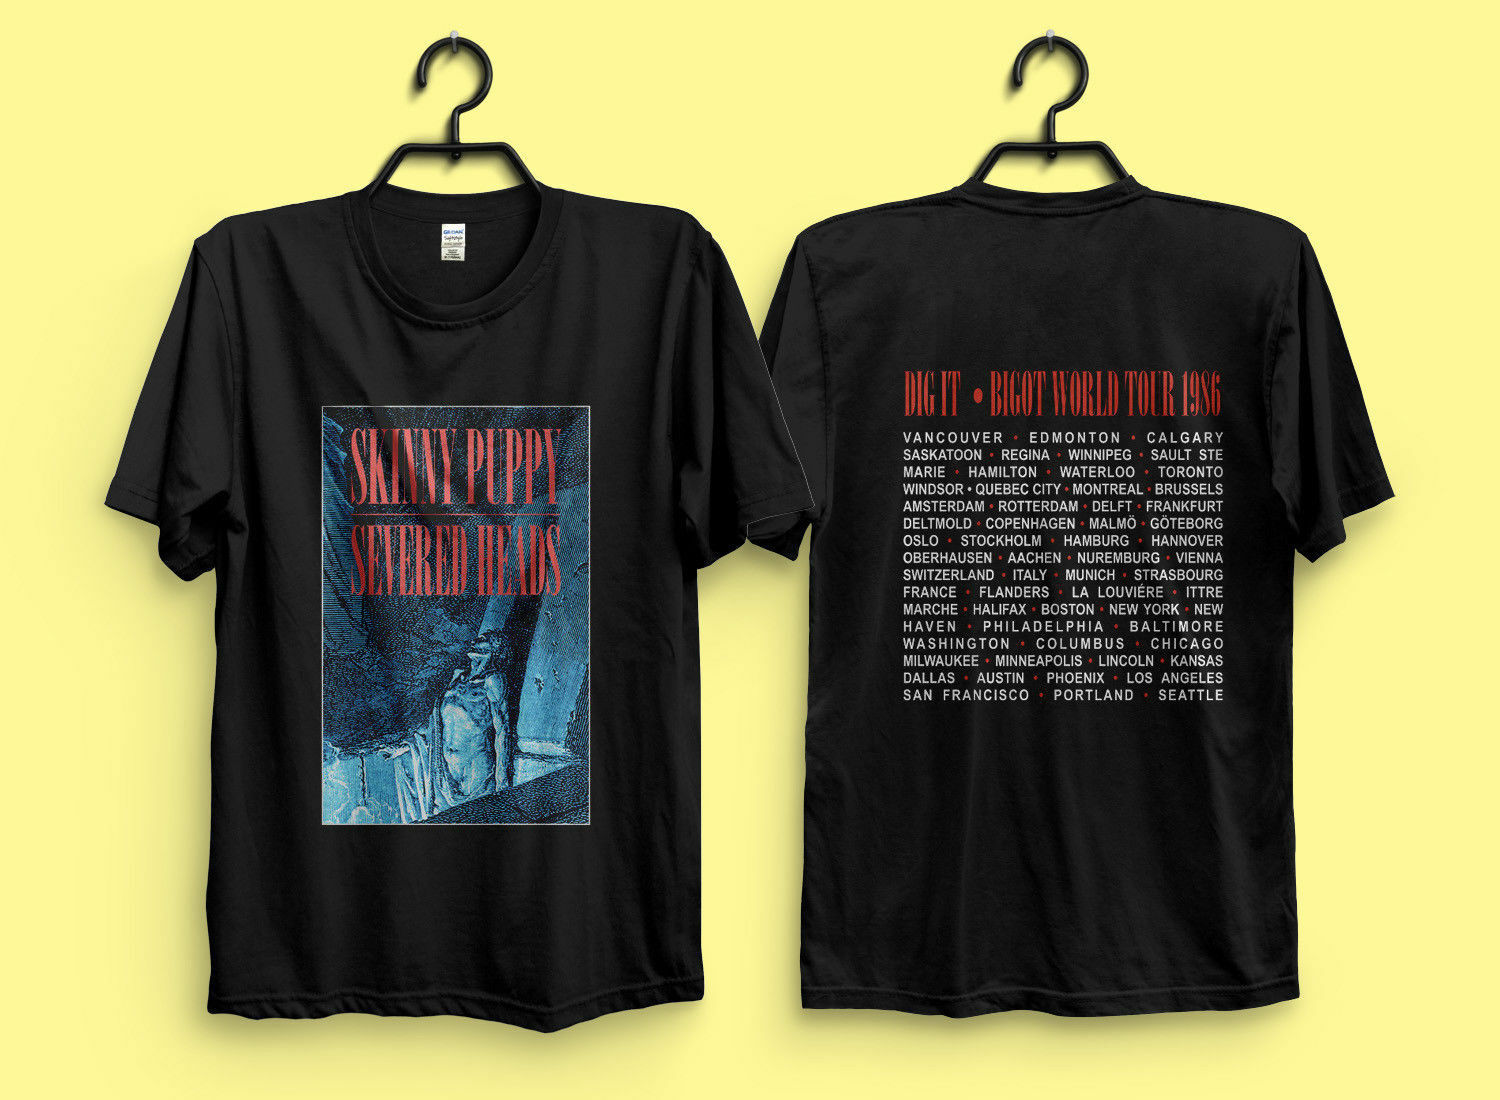 SKINNY PUPPY Dig It Bigot Tour 1986 Severed Heads T-Shirt  New Selling